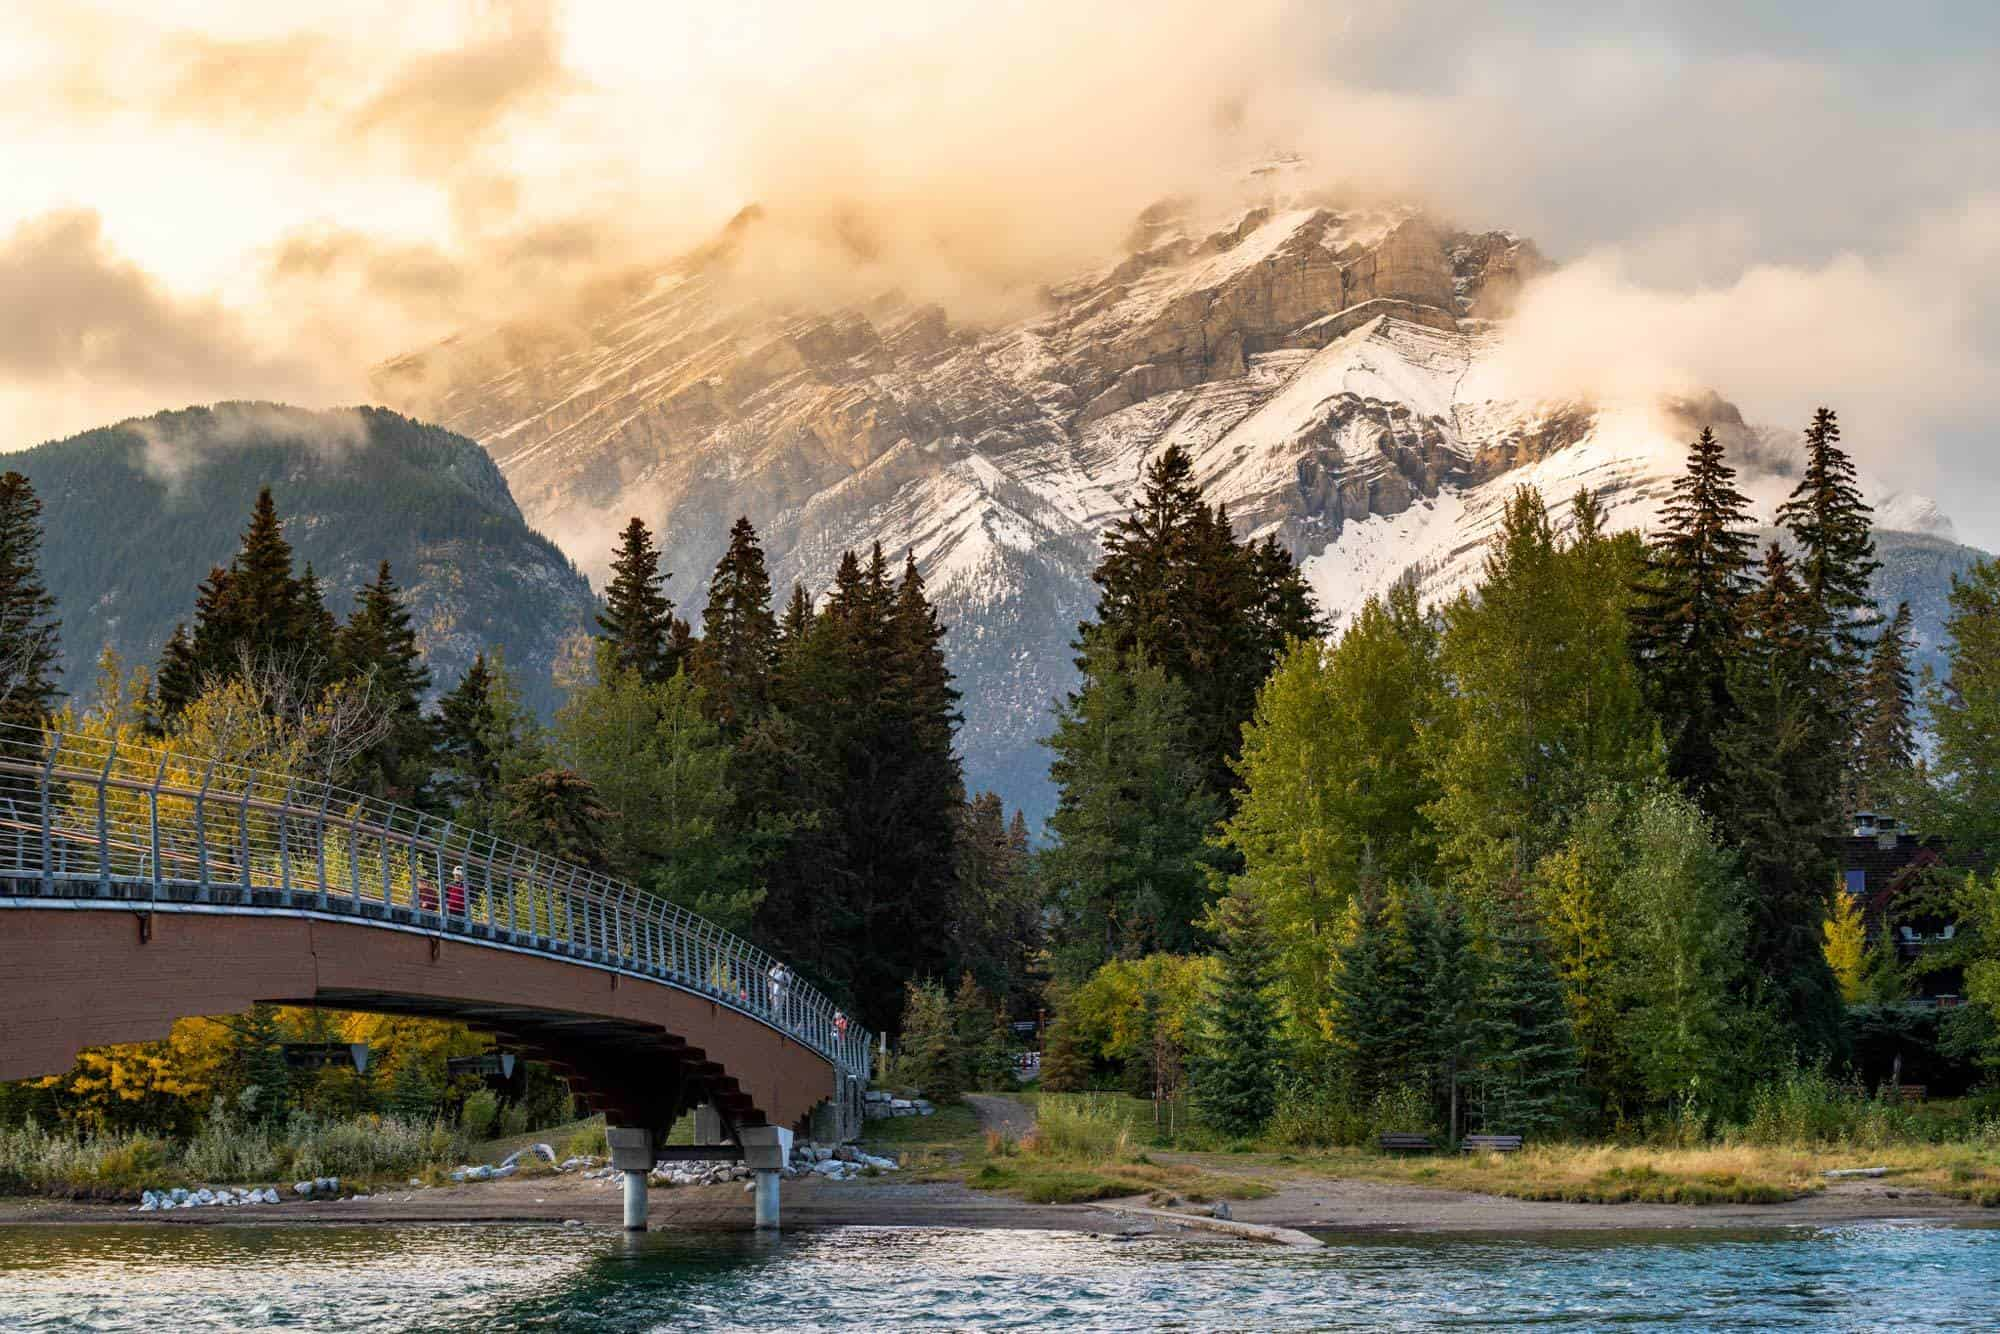 19 EPIC Things to Do in Banff, Canada (Free 2021 Guide) – NOMADasaurus Adventure Travel Blog